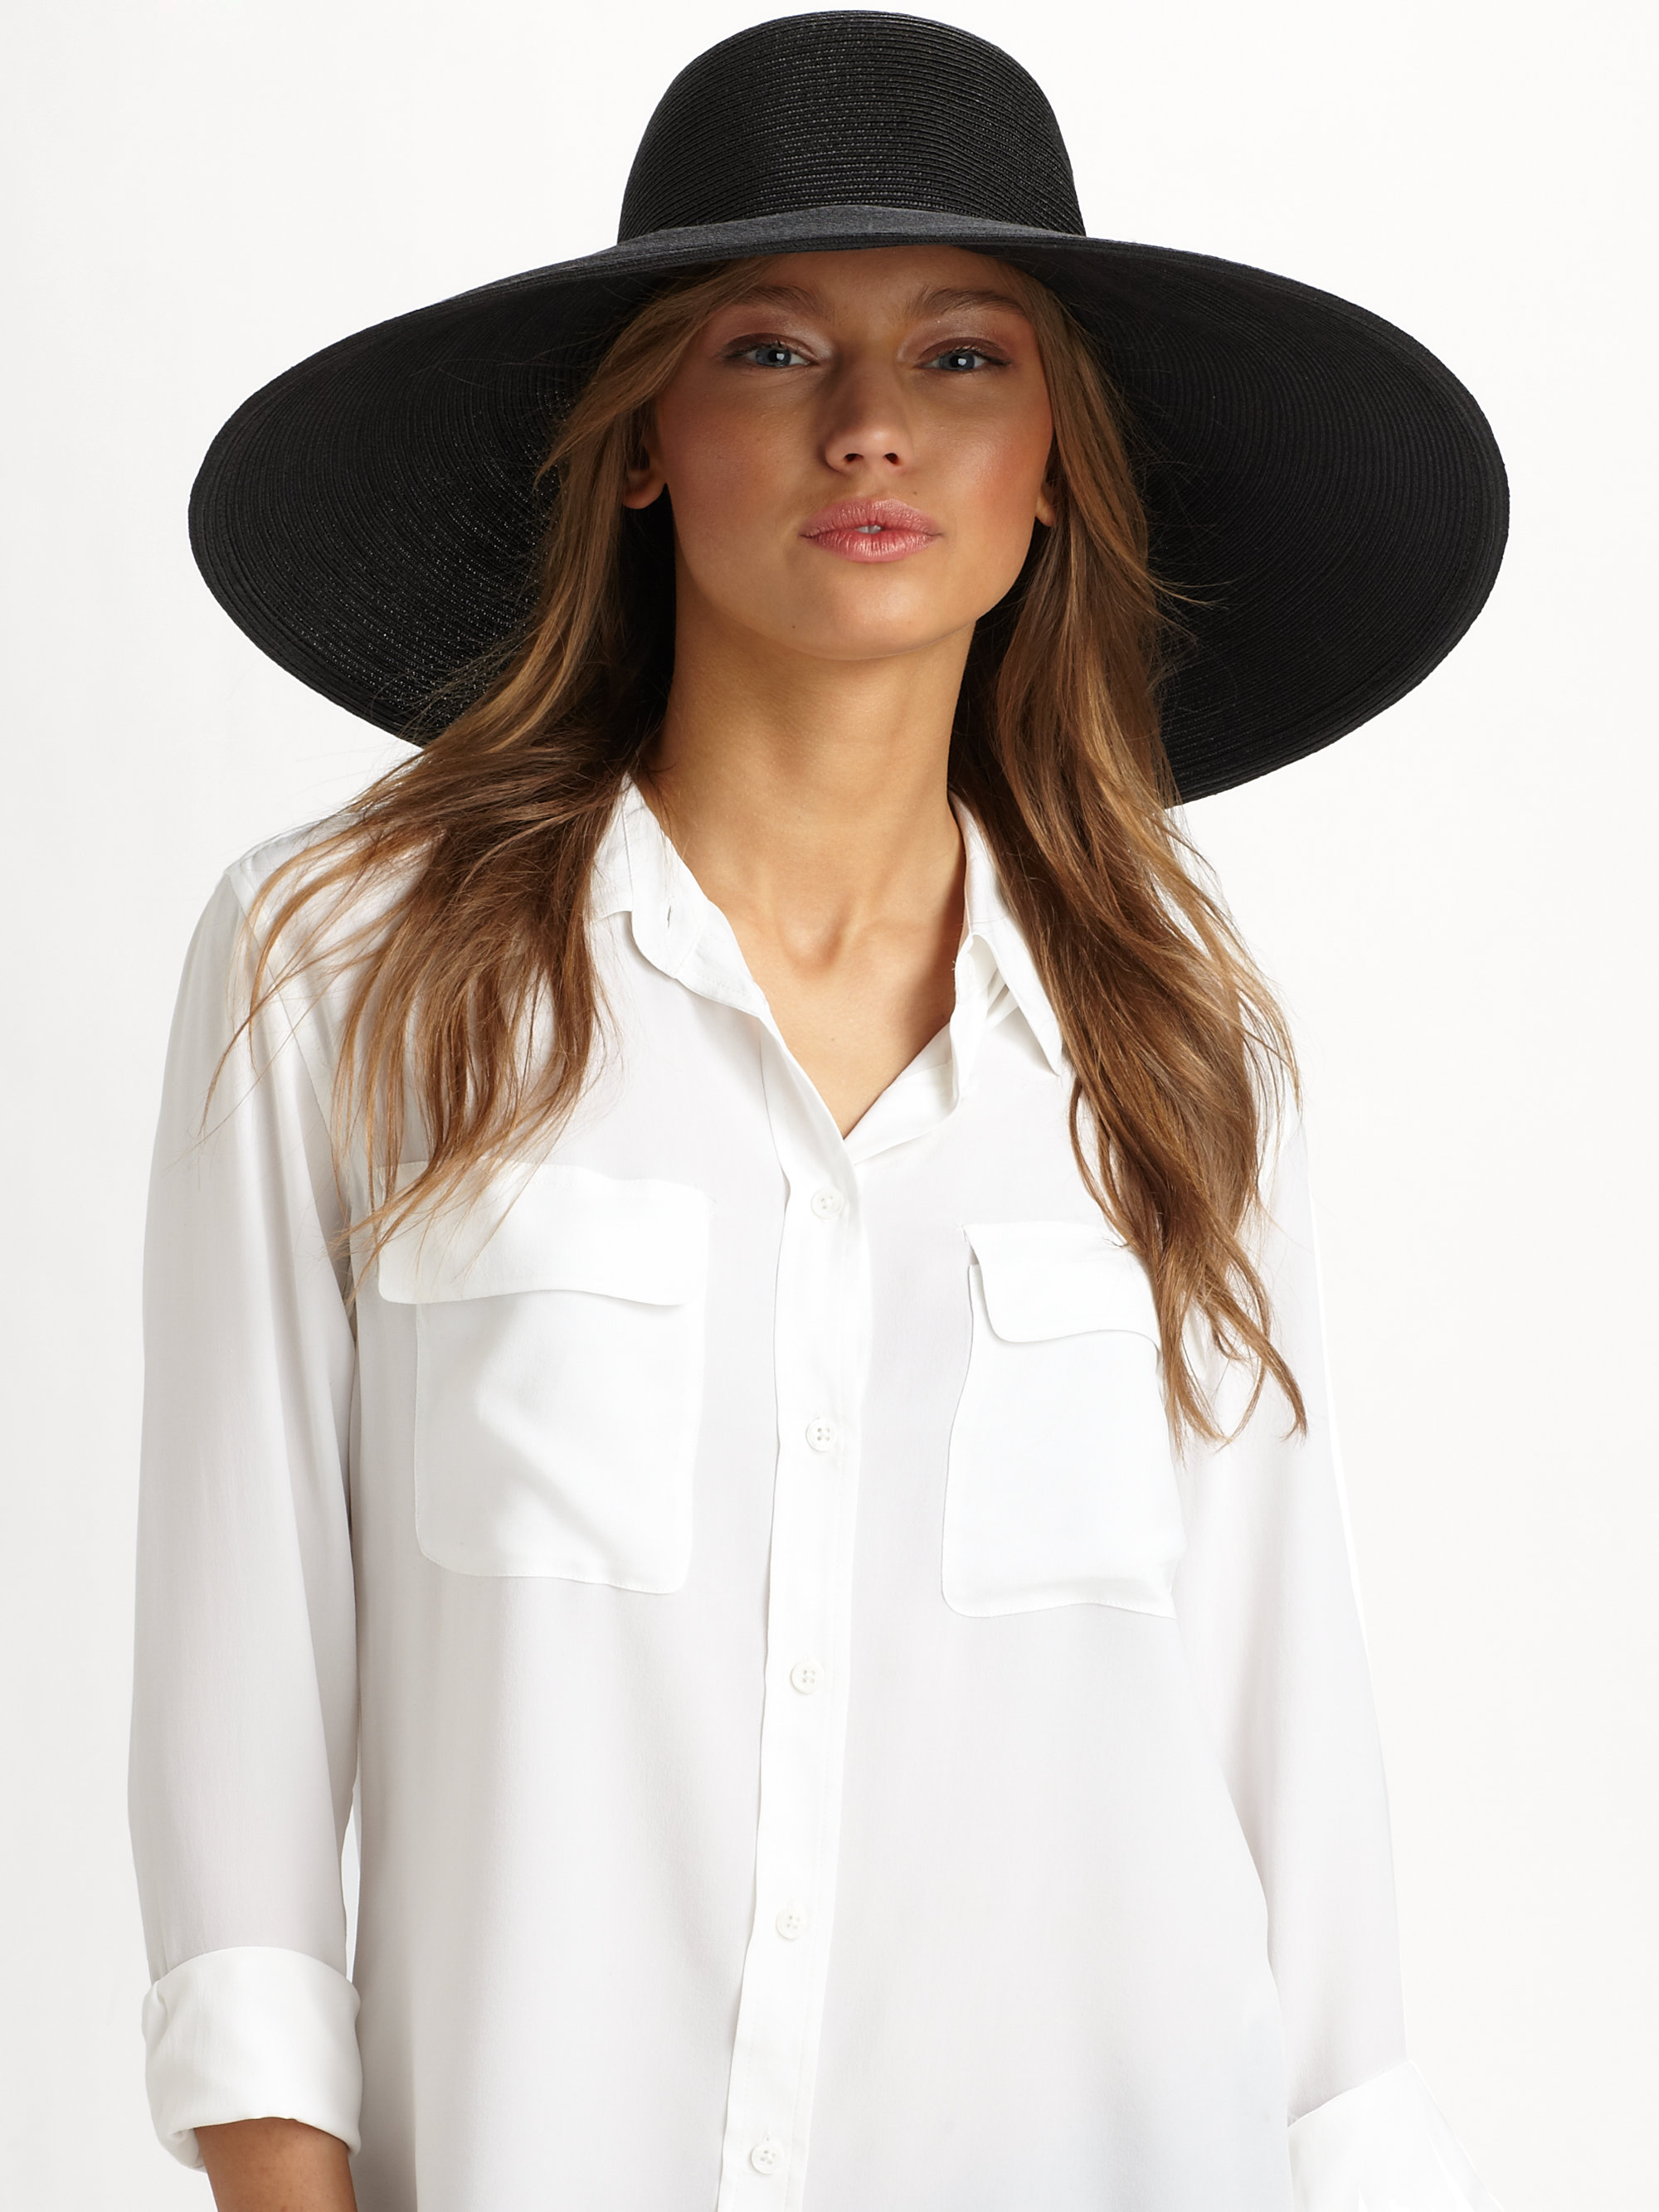 4a98f24a0 Eric Javits Oversized Floppy Hat in Black - Lyst